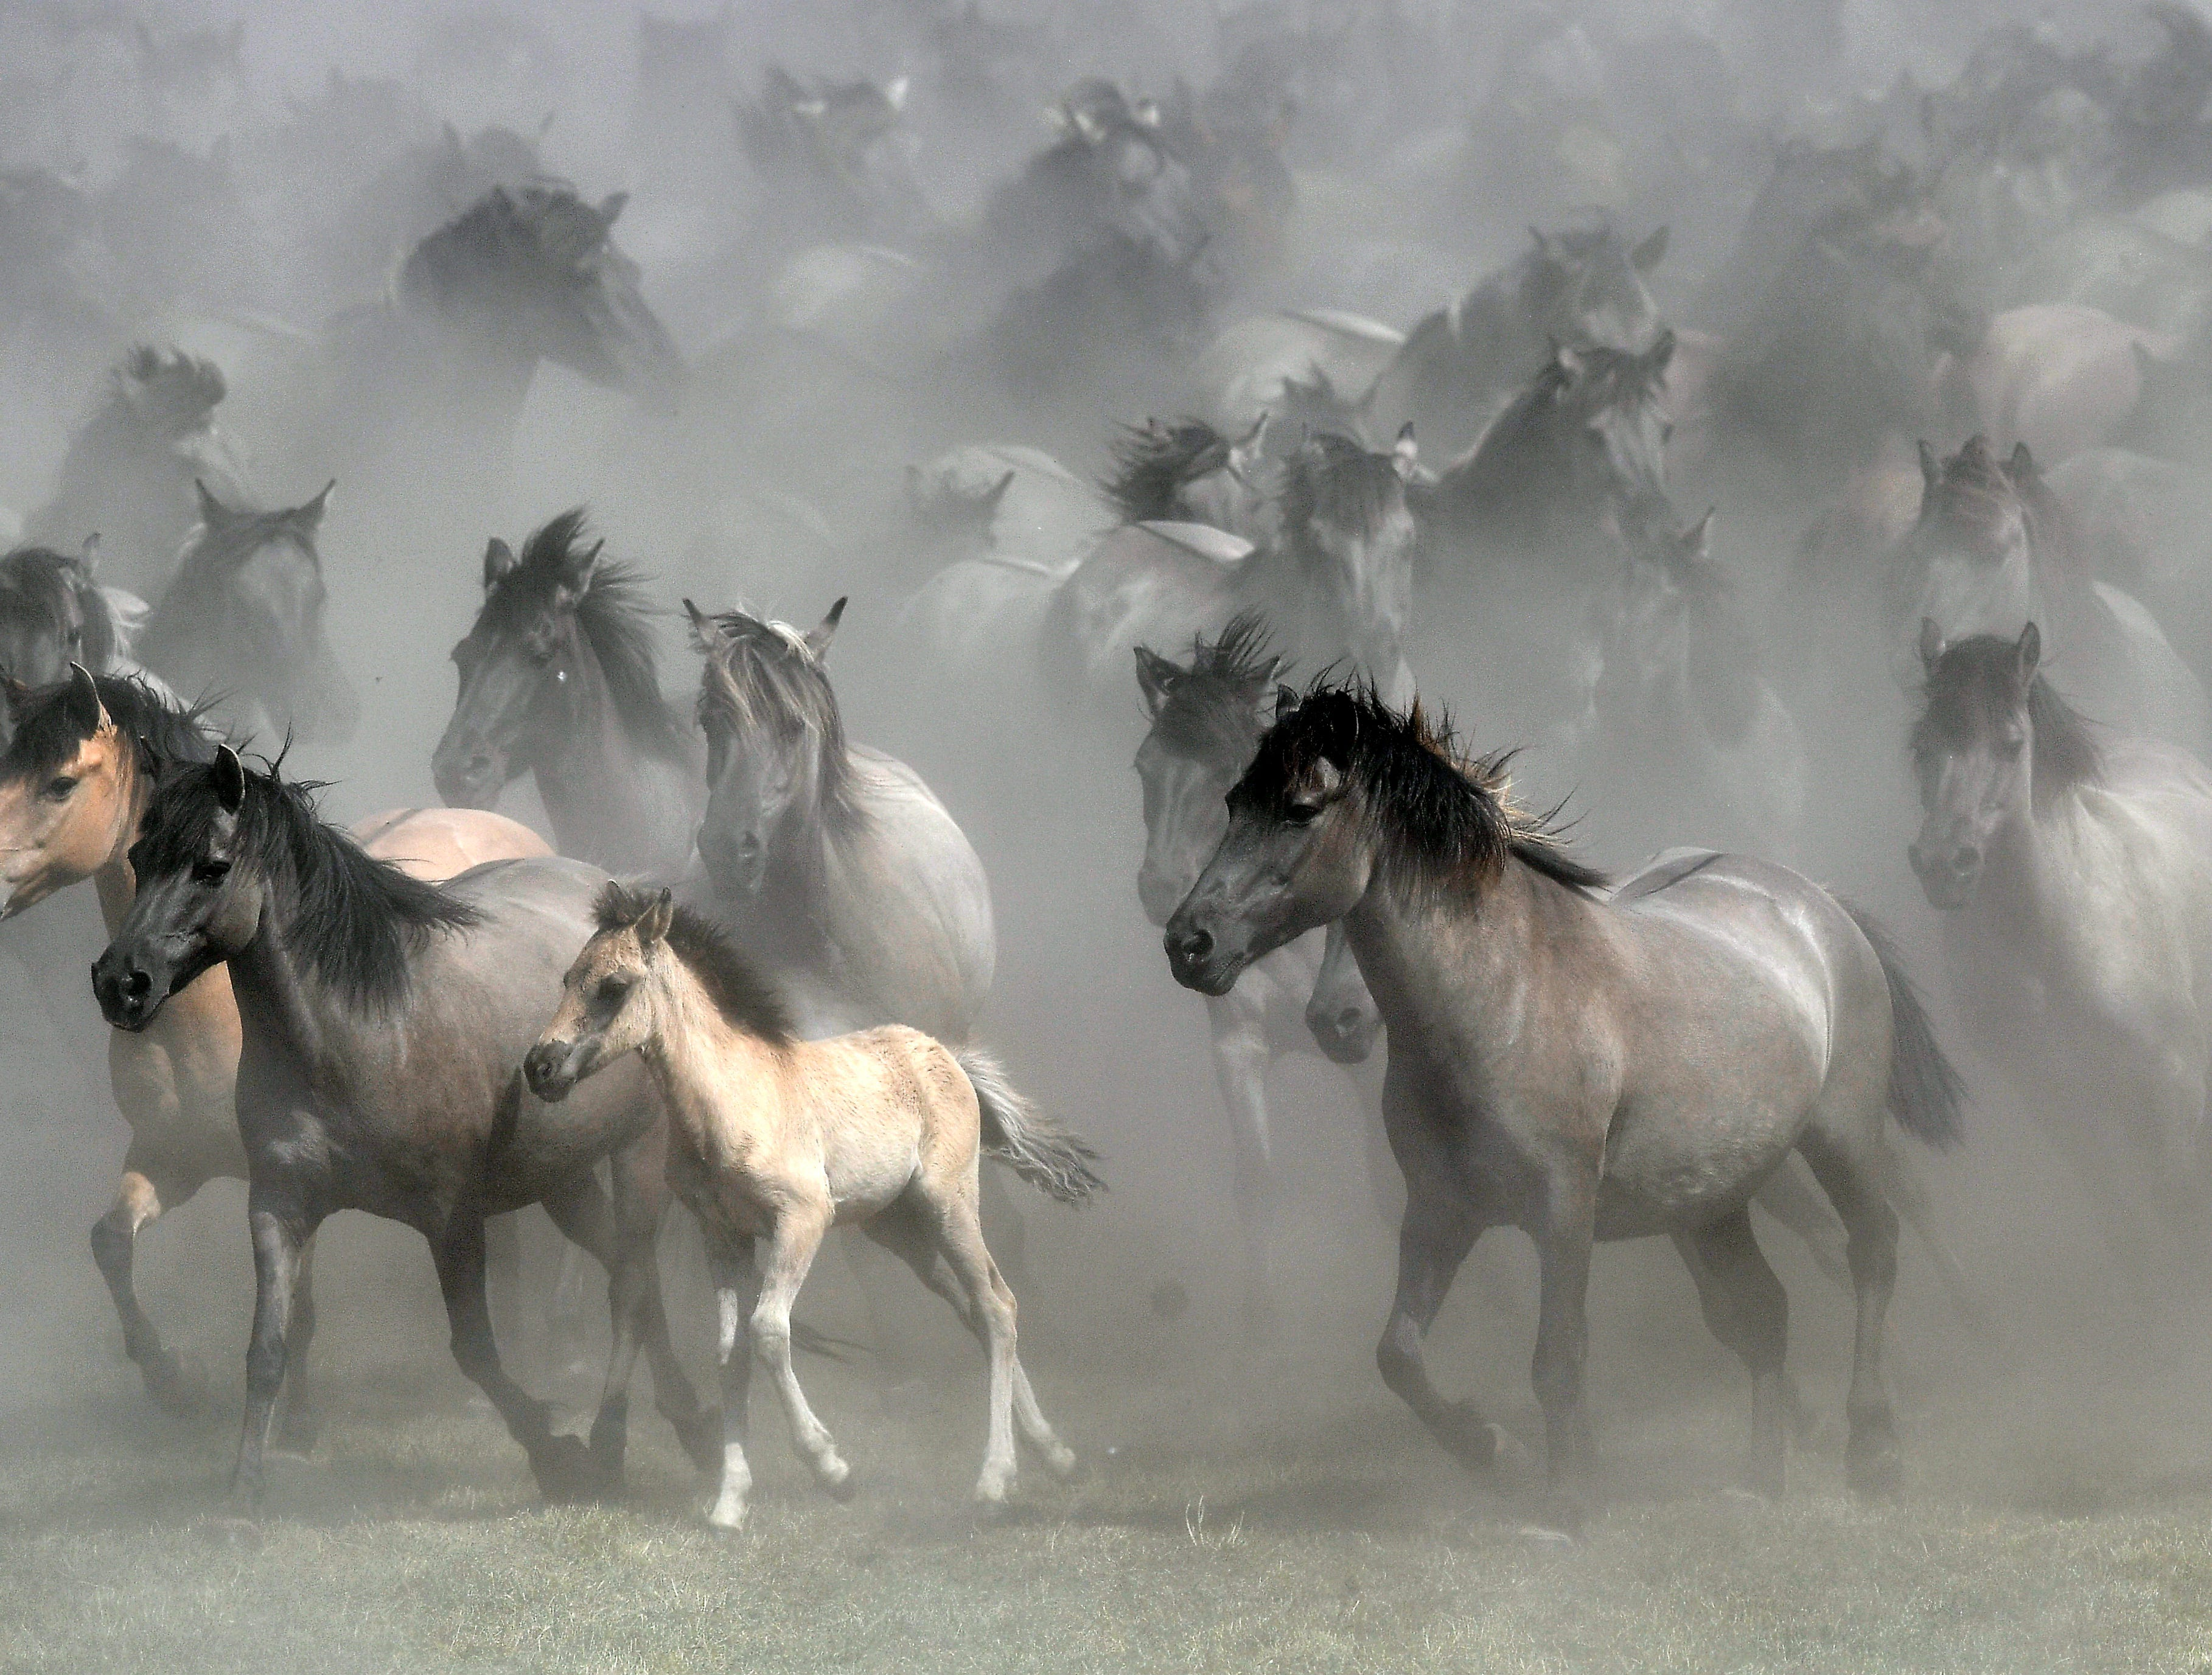 May 26, 2018: Wild horses raise dust in Duelmen, Germany, when they are driven together that young men can separate the young stallions from one of Europe's last herd of wild horses. About 400 native breed horses are left to find food and shelter, must cope with illness and death. Only once a year they have direct contact with humans when the young stallions are caught from the flock, that was first mentioned in chronicles 700 years ago.